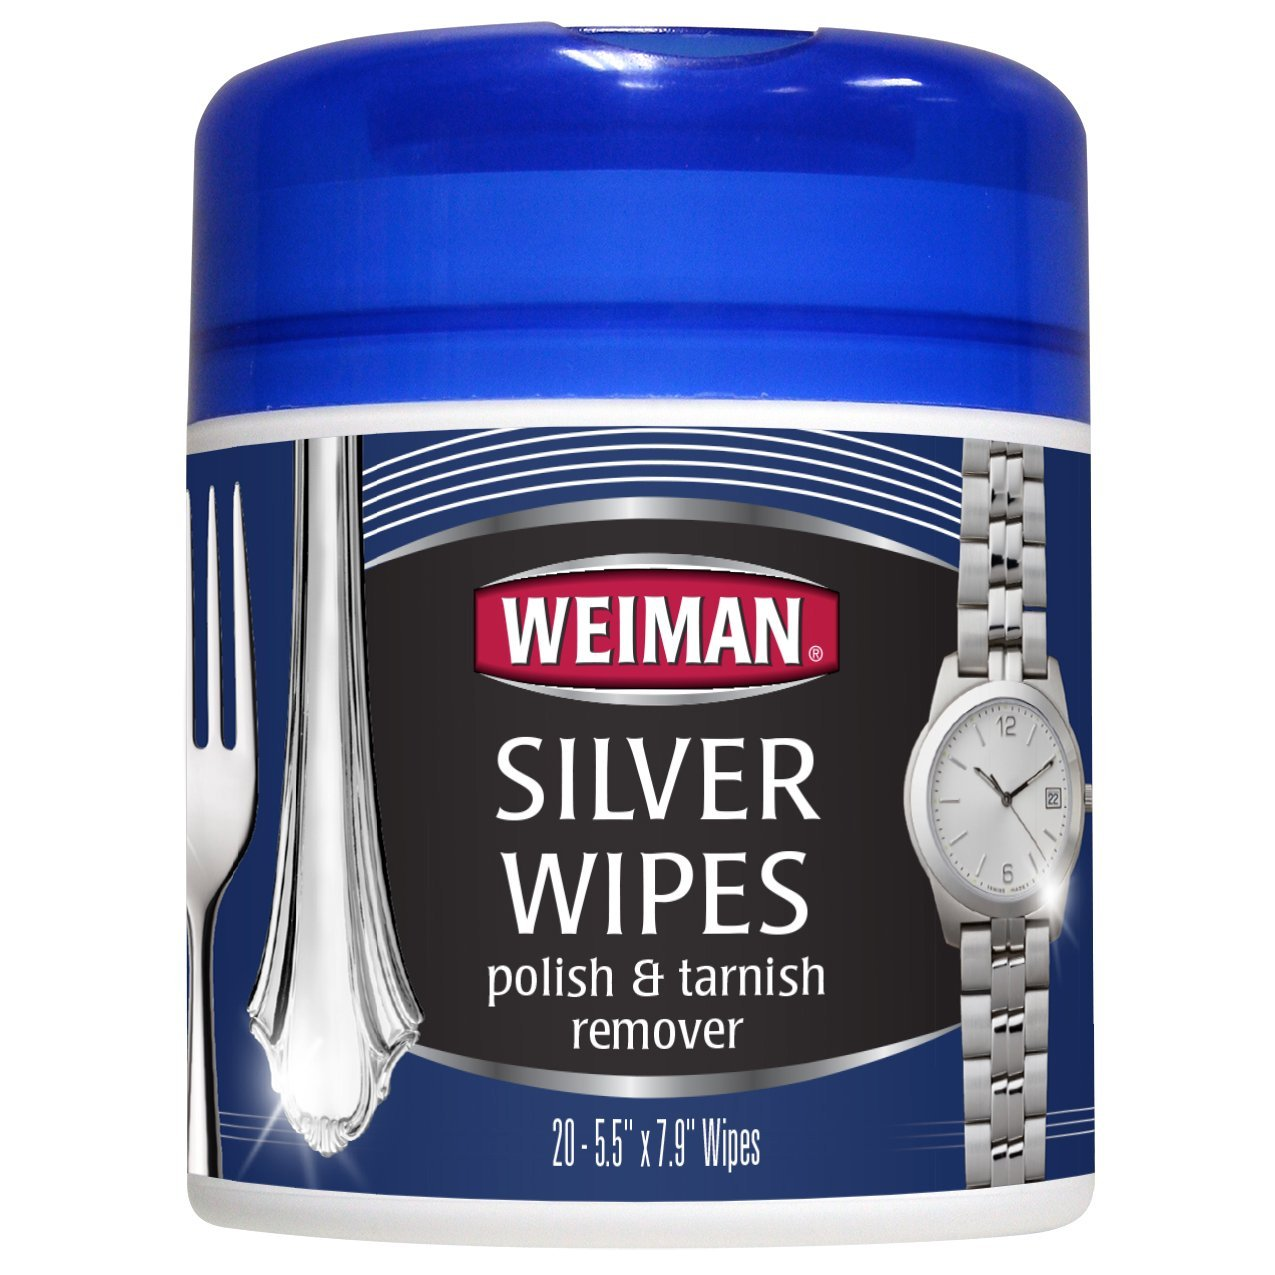 Weiman Silver Polish & Tarnish Remover Wipes -  Use on Silver, Jewelry,  Silver plater, Antique silver, Gold, Brass, Copper and Aluminum - 20 Count